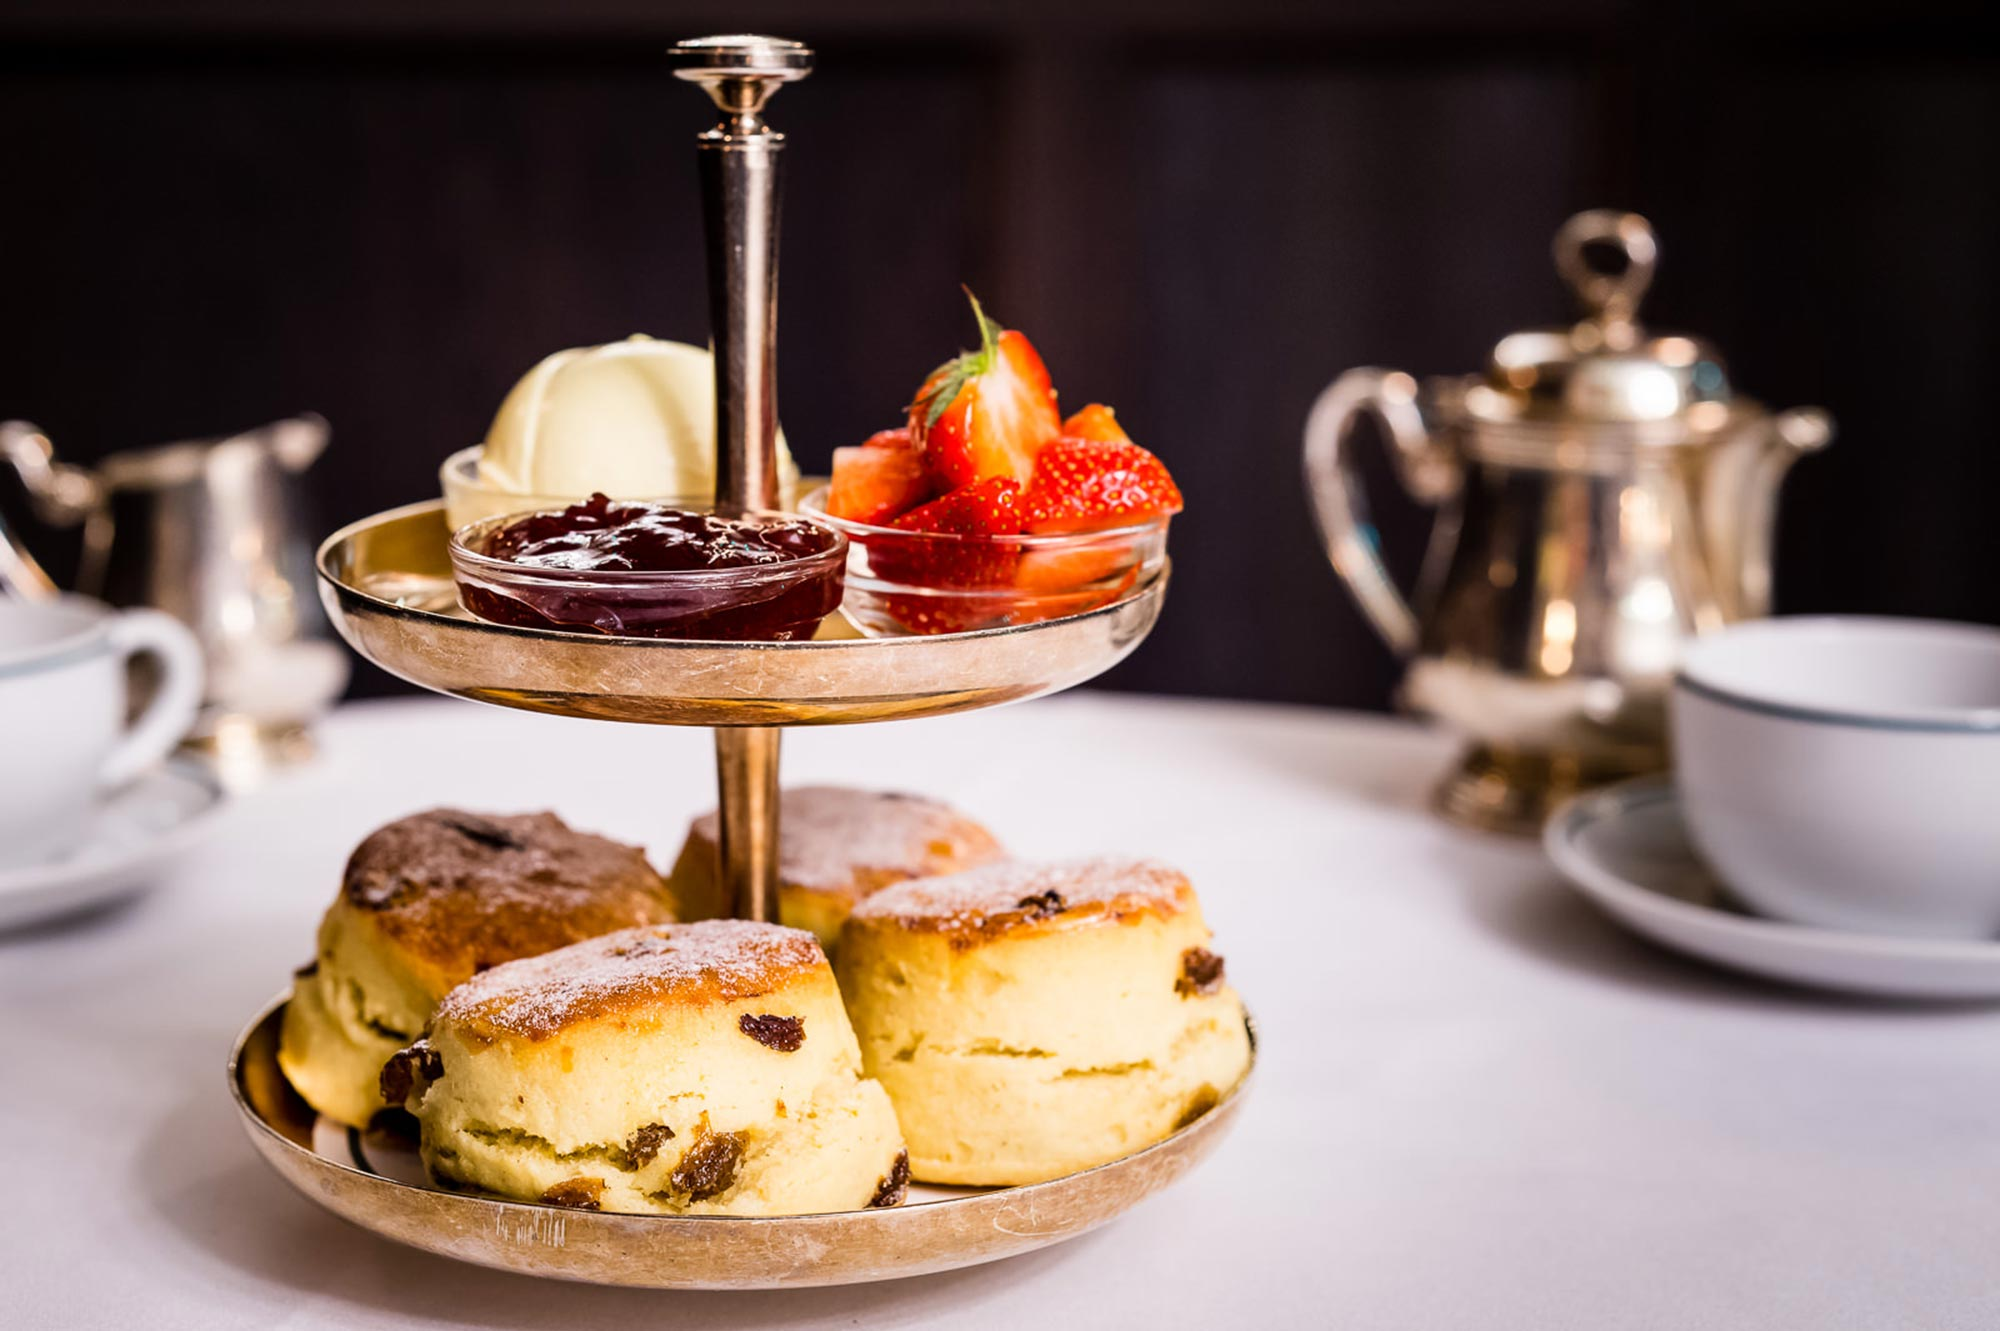 Afternoon Tea at The Ivy Clifton Brasserie, Bristol - The Ivy Clifton Brasserie